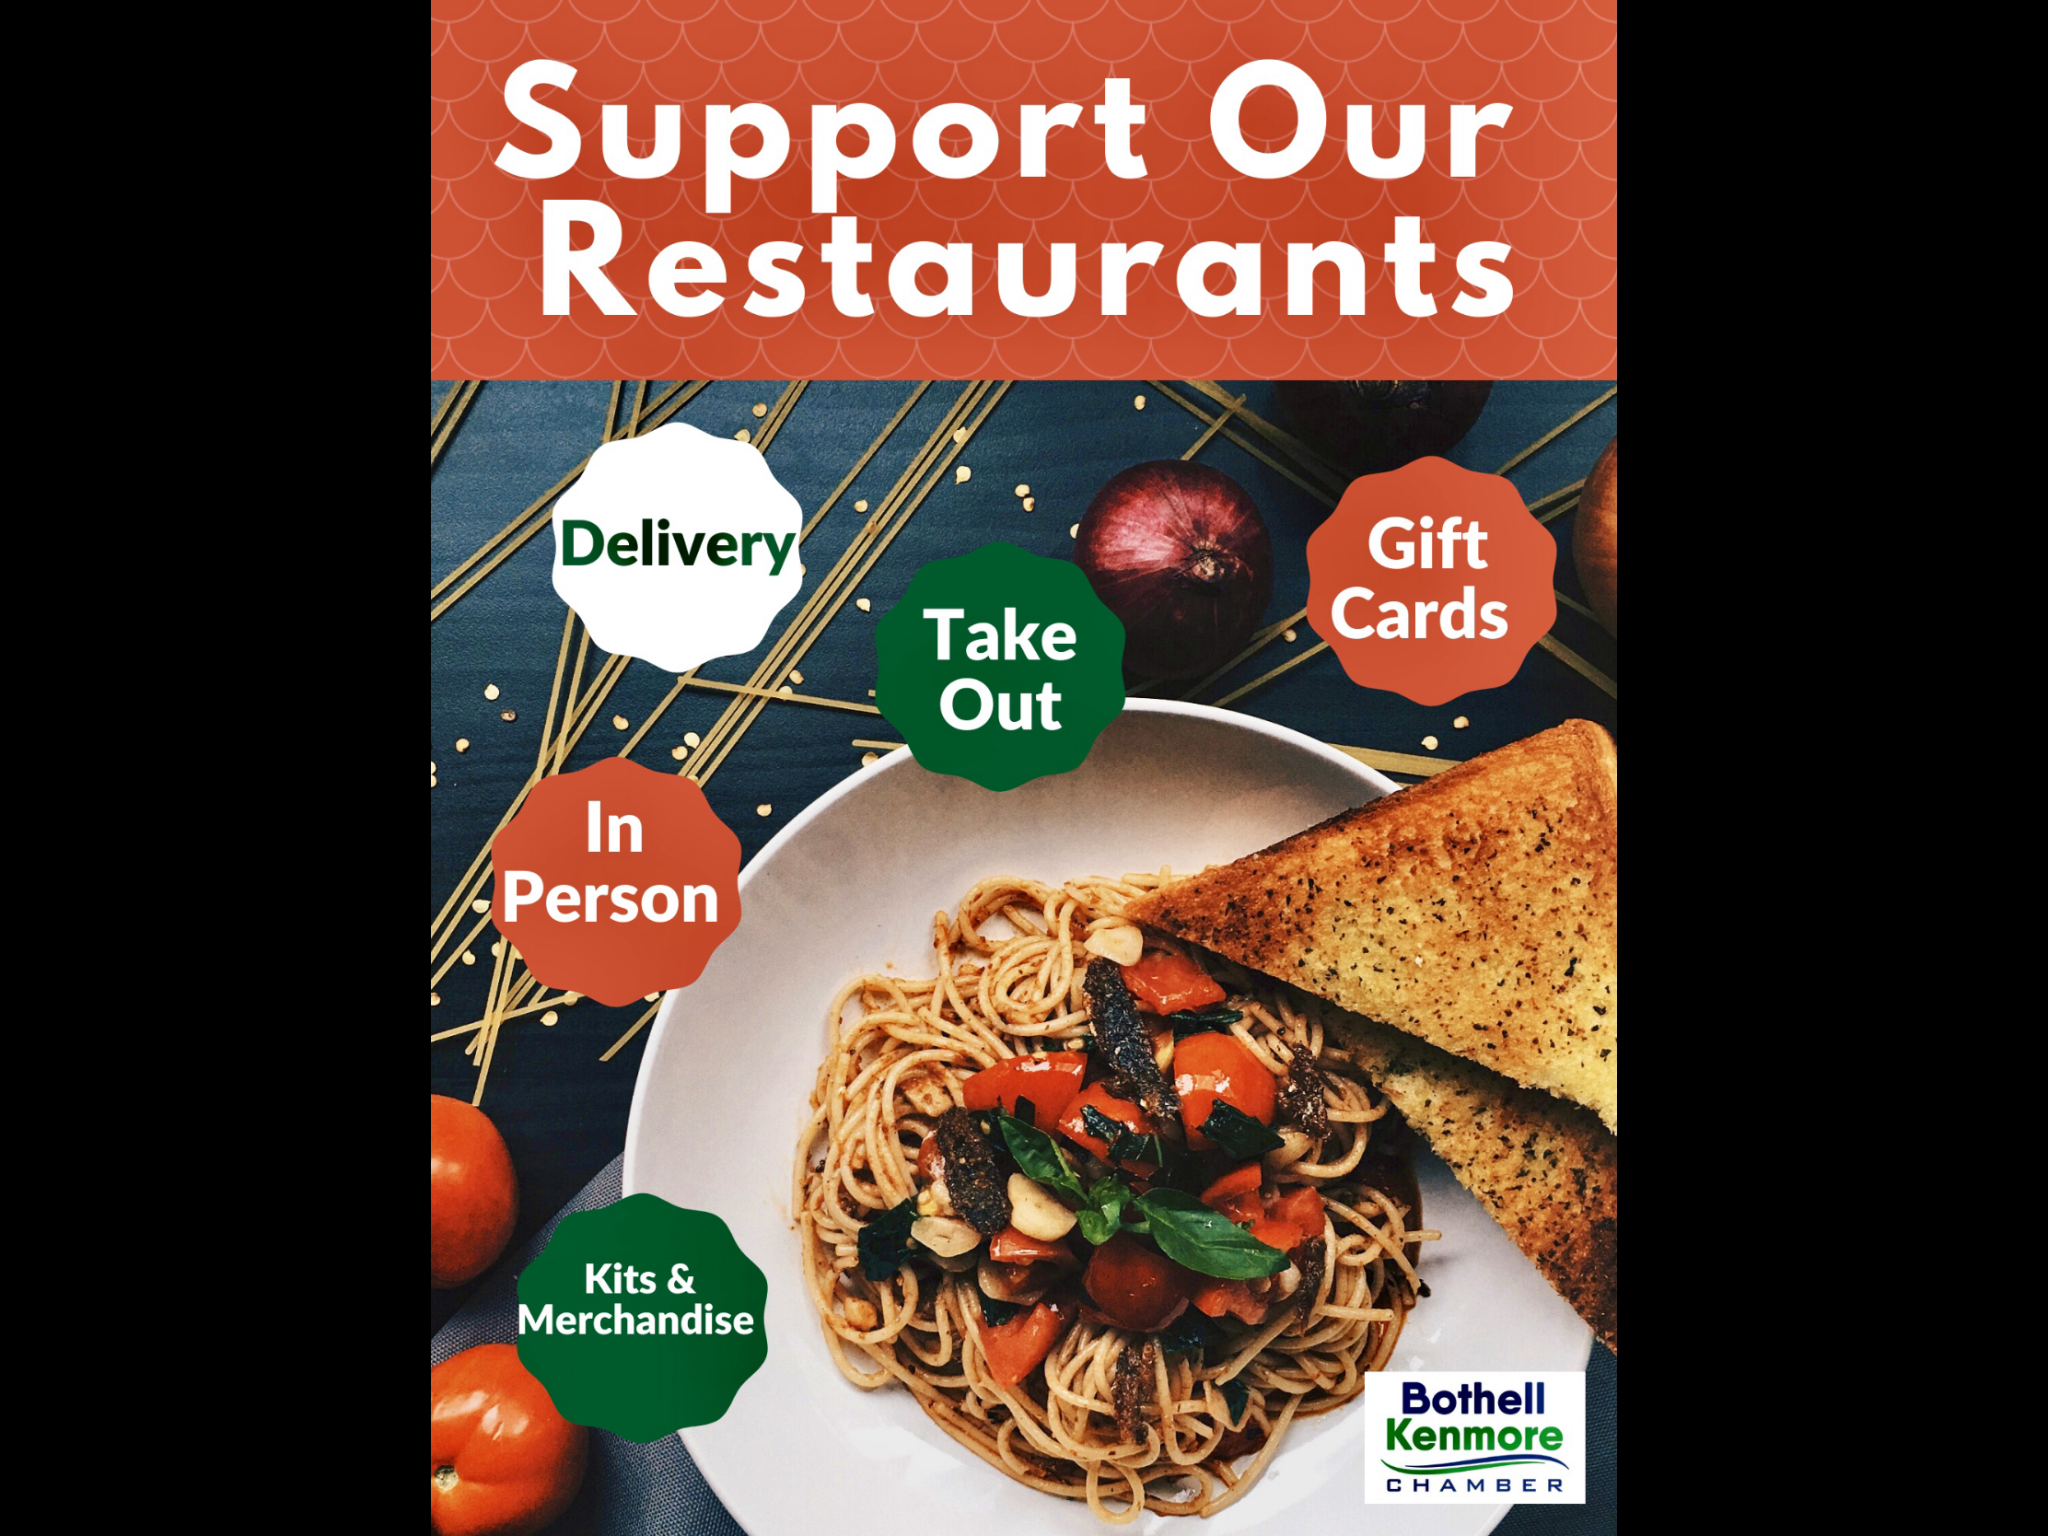 Support Our Local Restaurants image